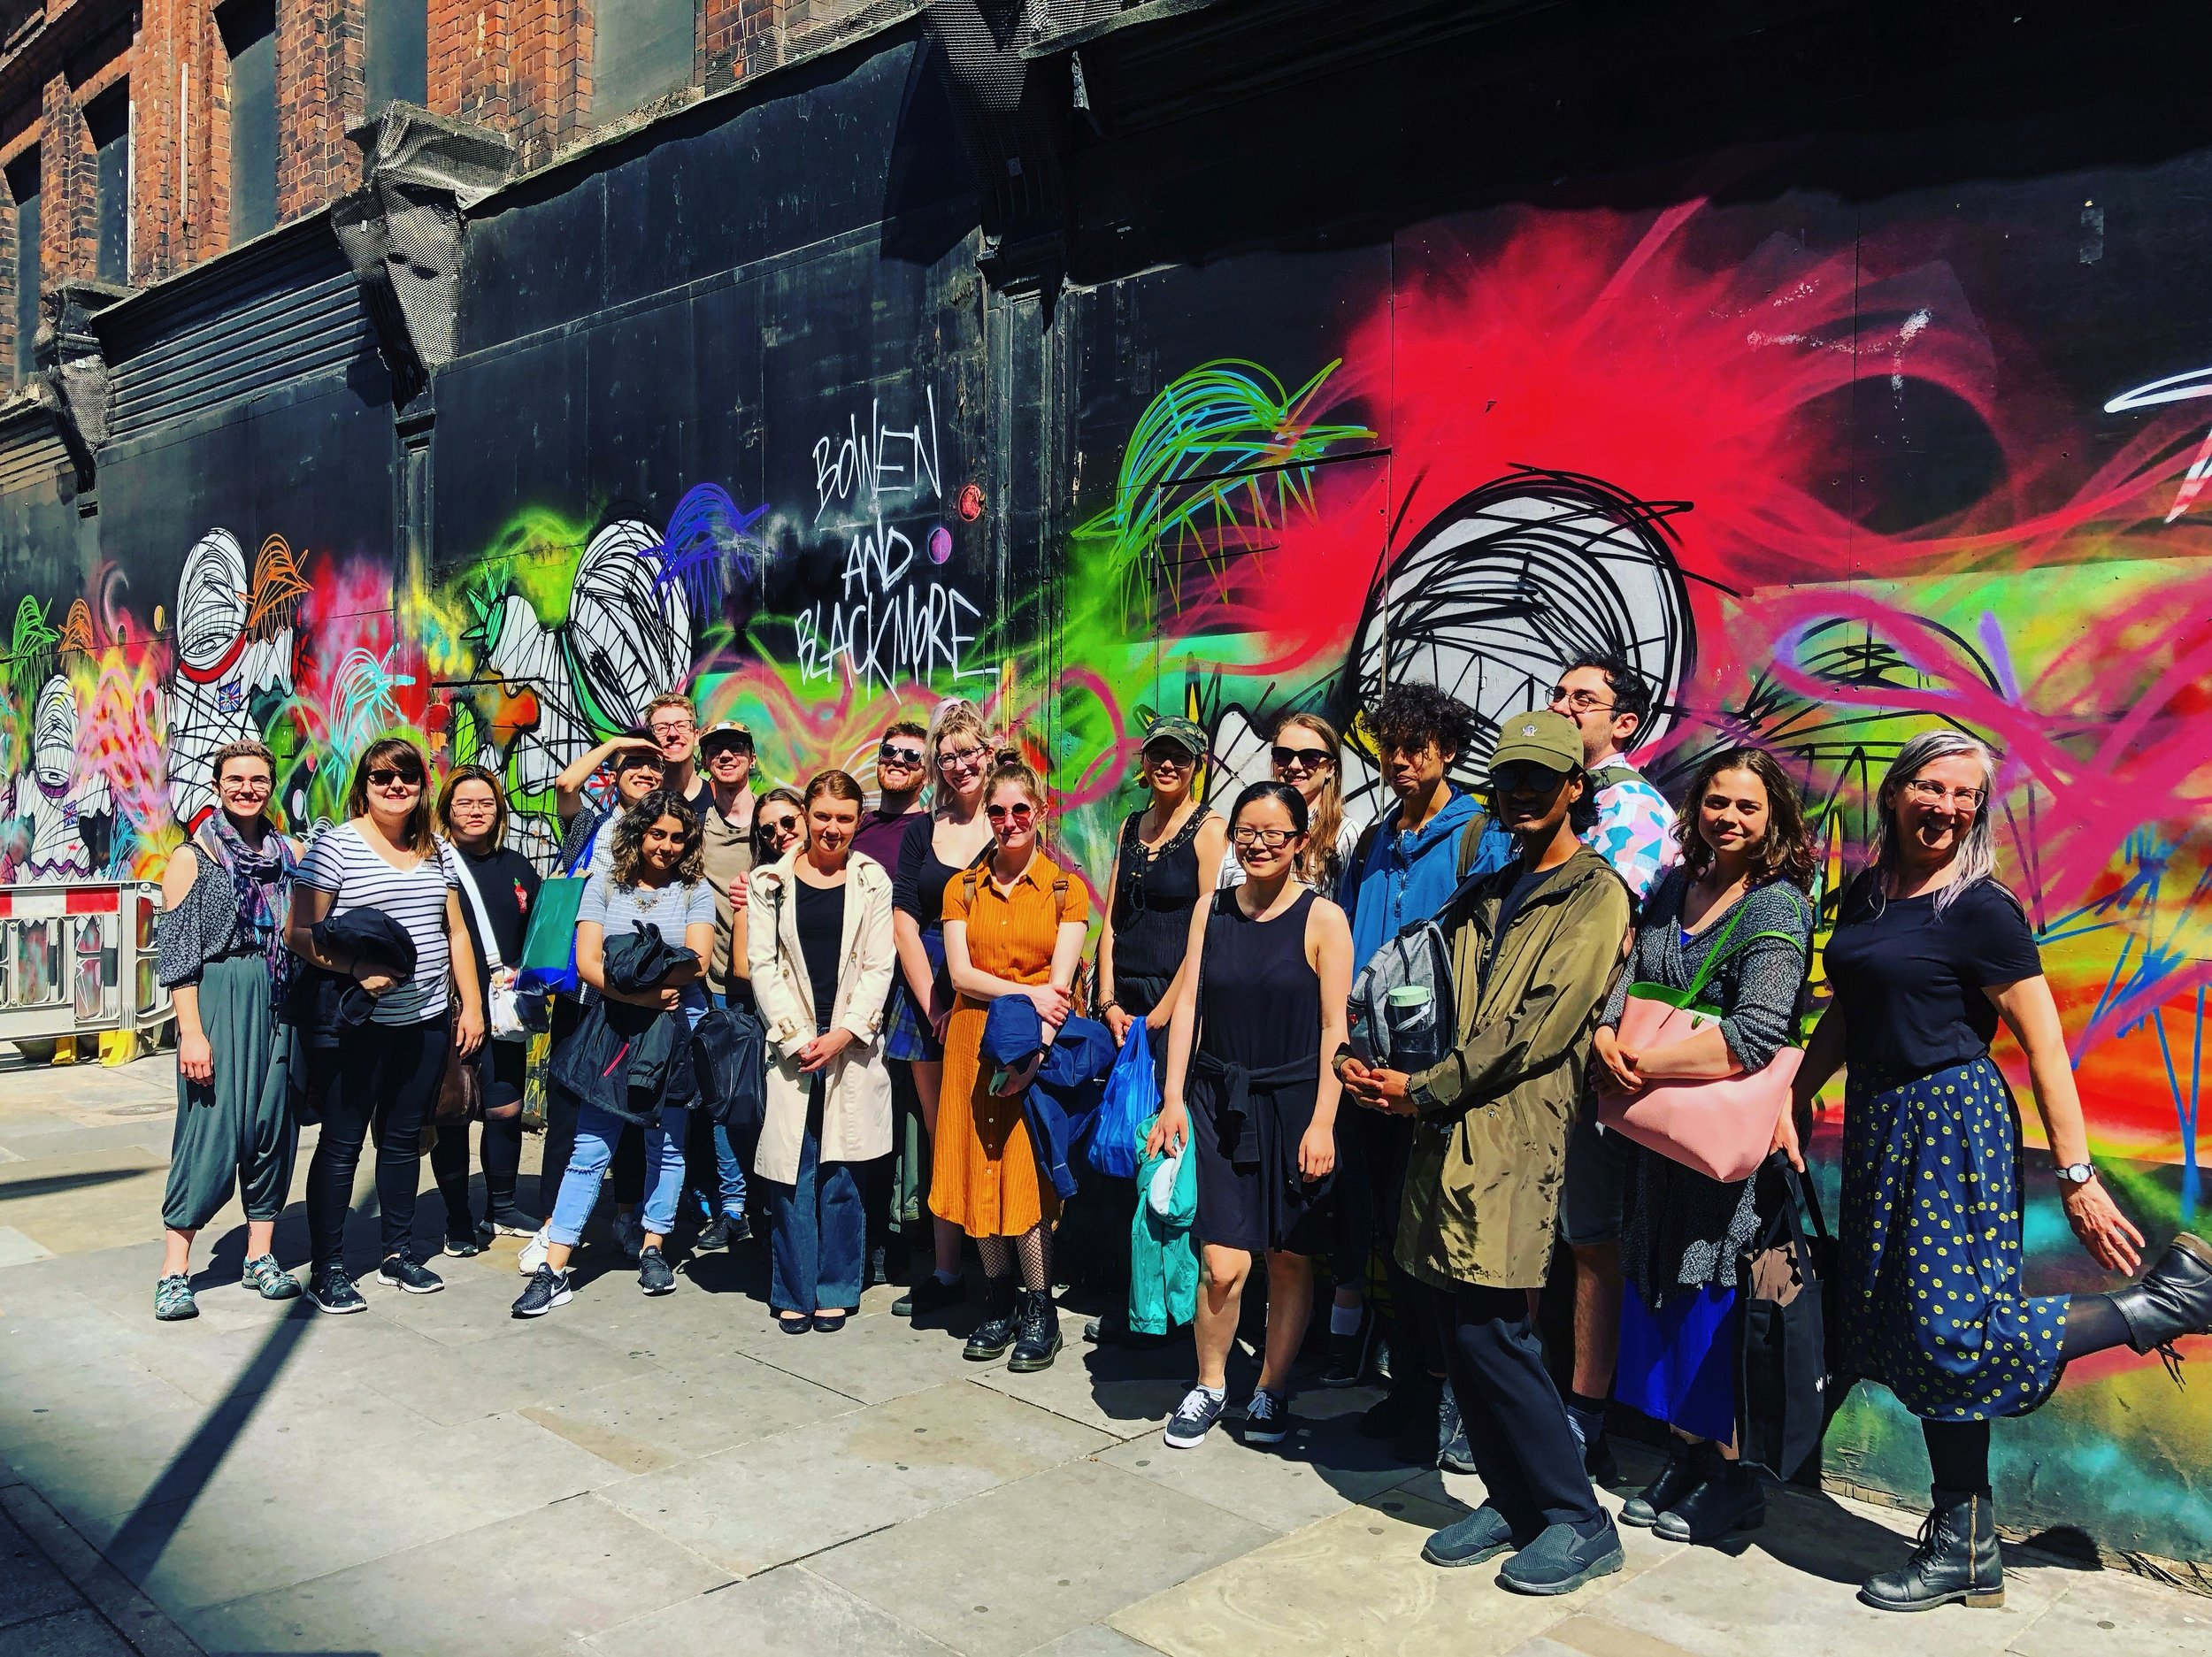 Anglea, at far right, and the group enjoying an outing in Shoreditch not far from Whitechapel and Barbican.